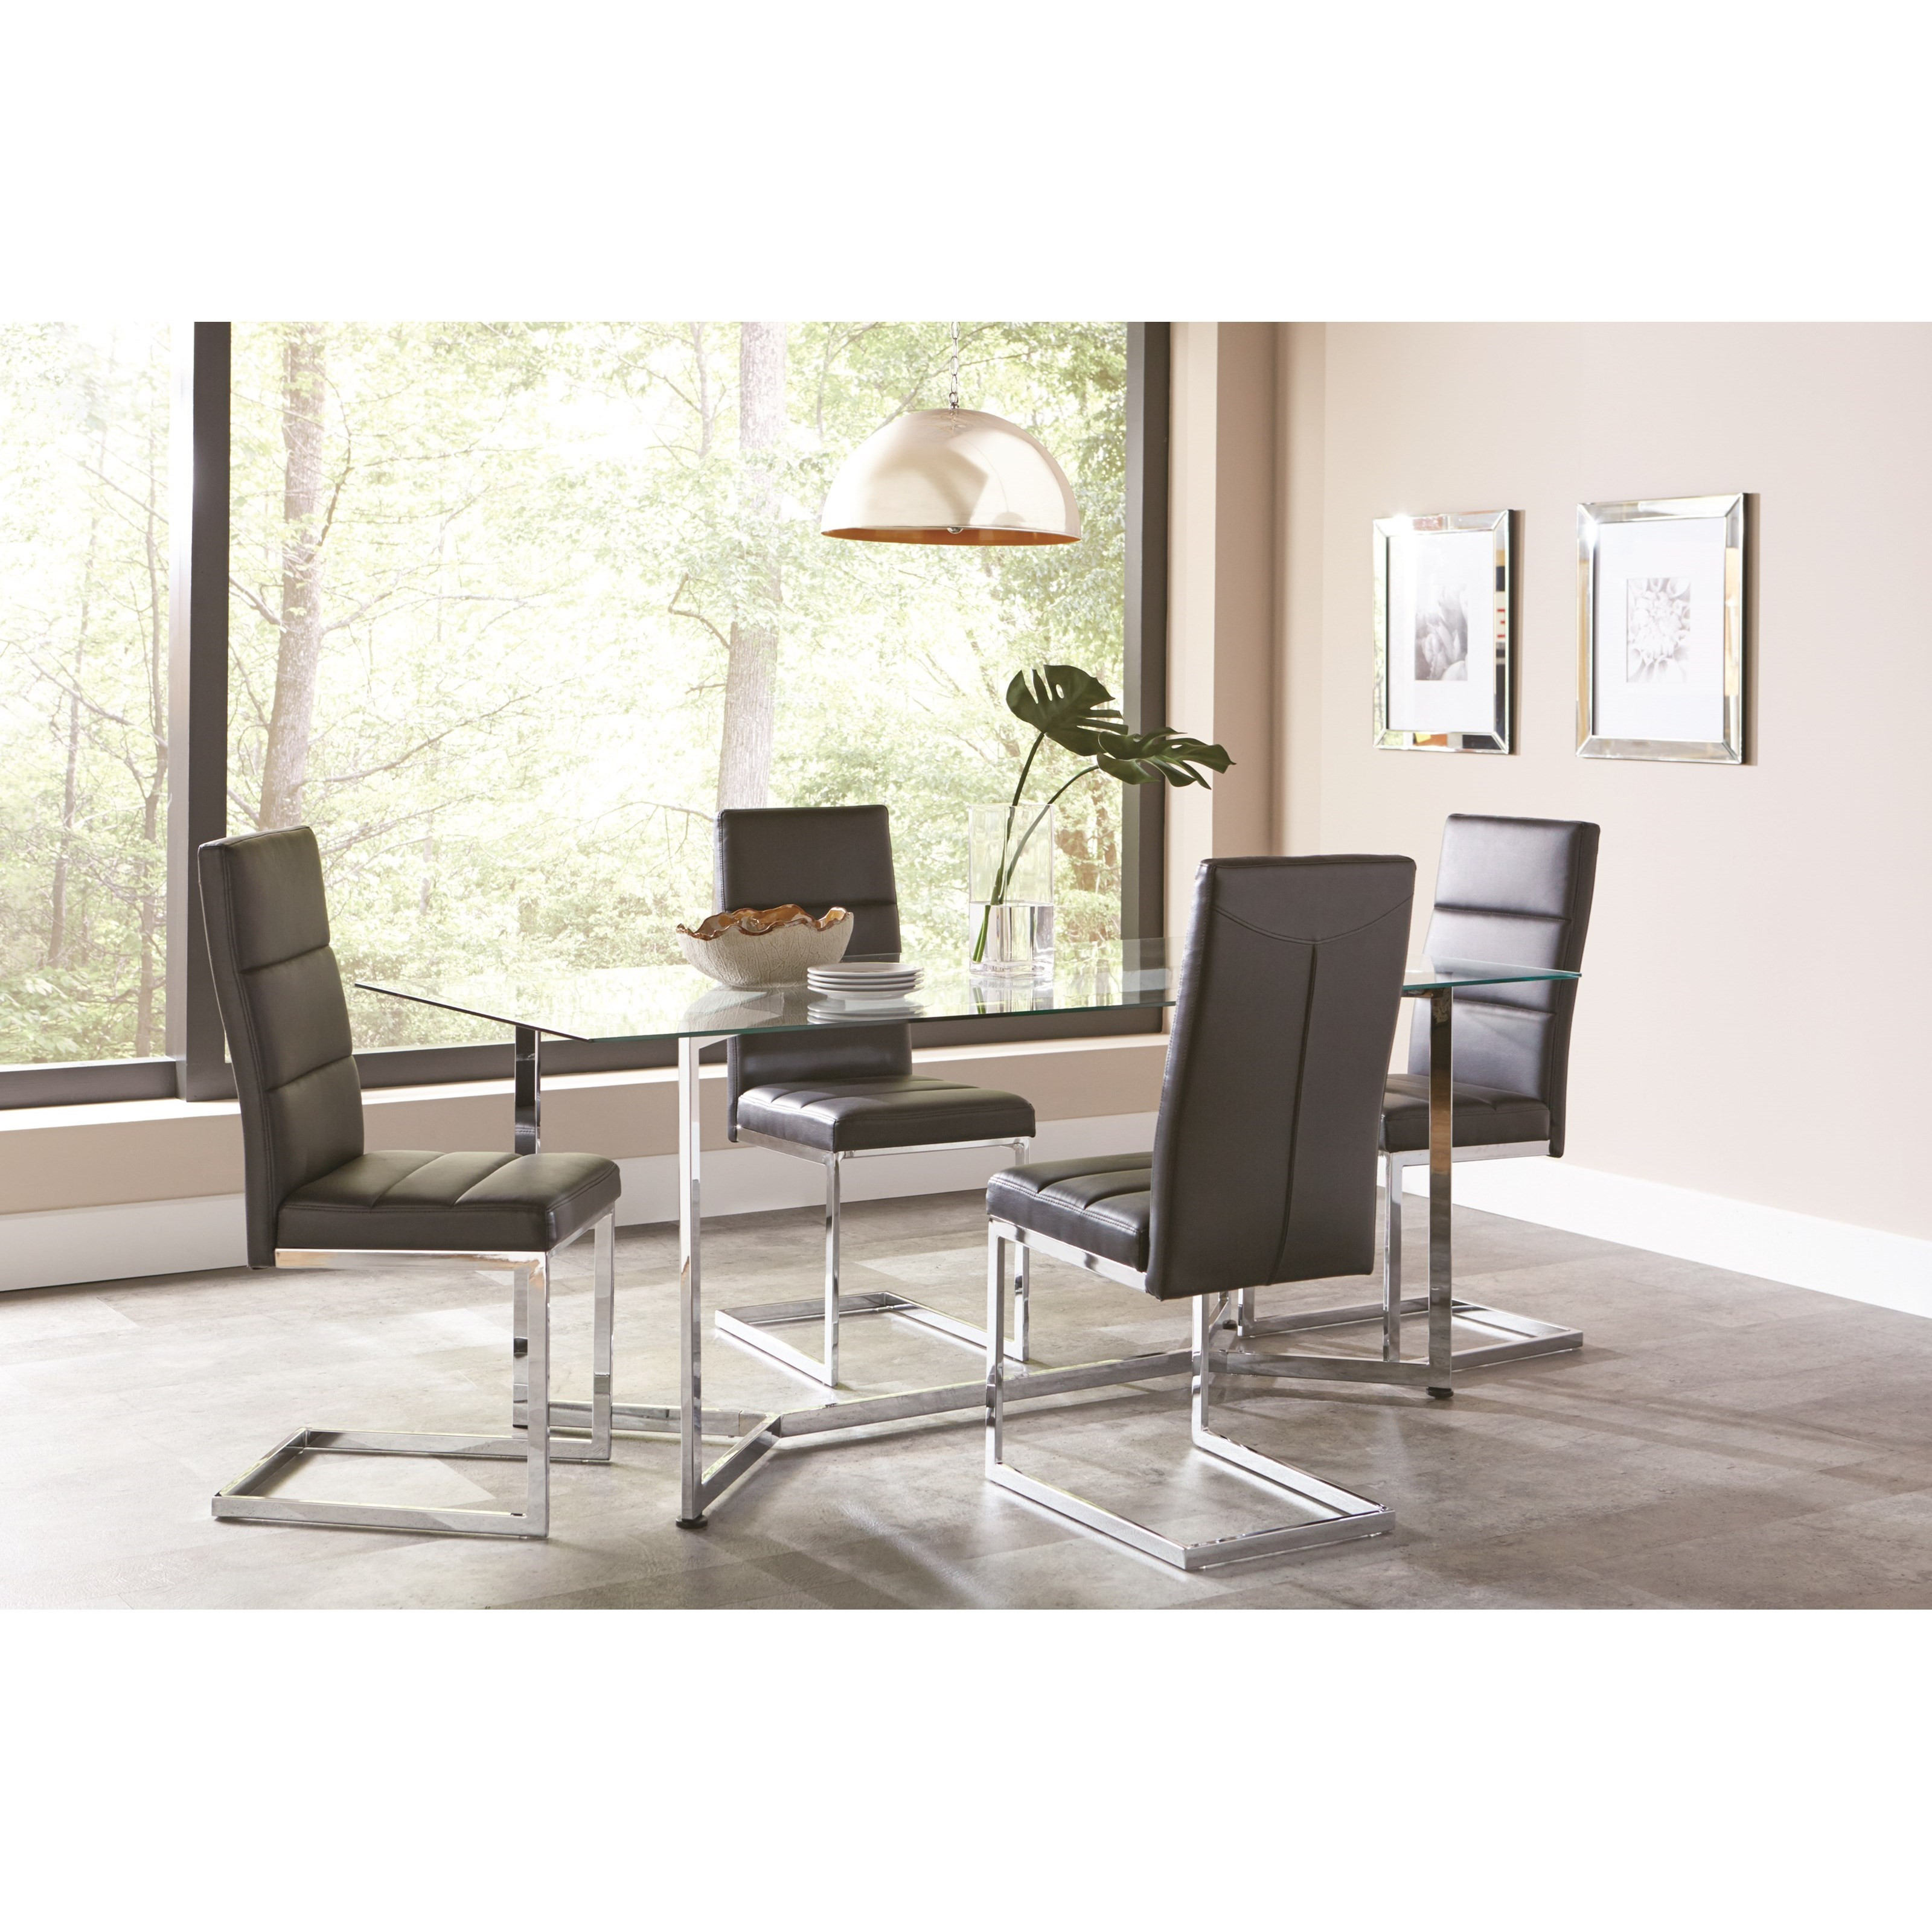 Coaster Augustin Table and Chair Set - Item Number: 106901+4x103156